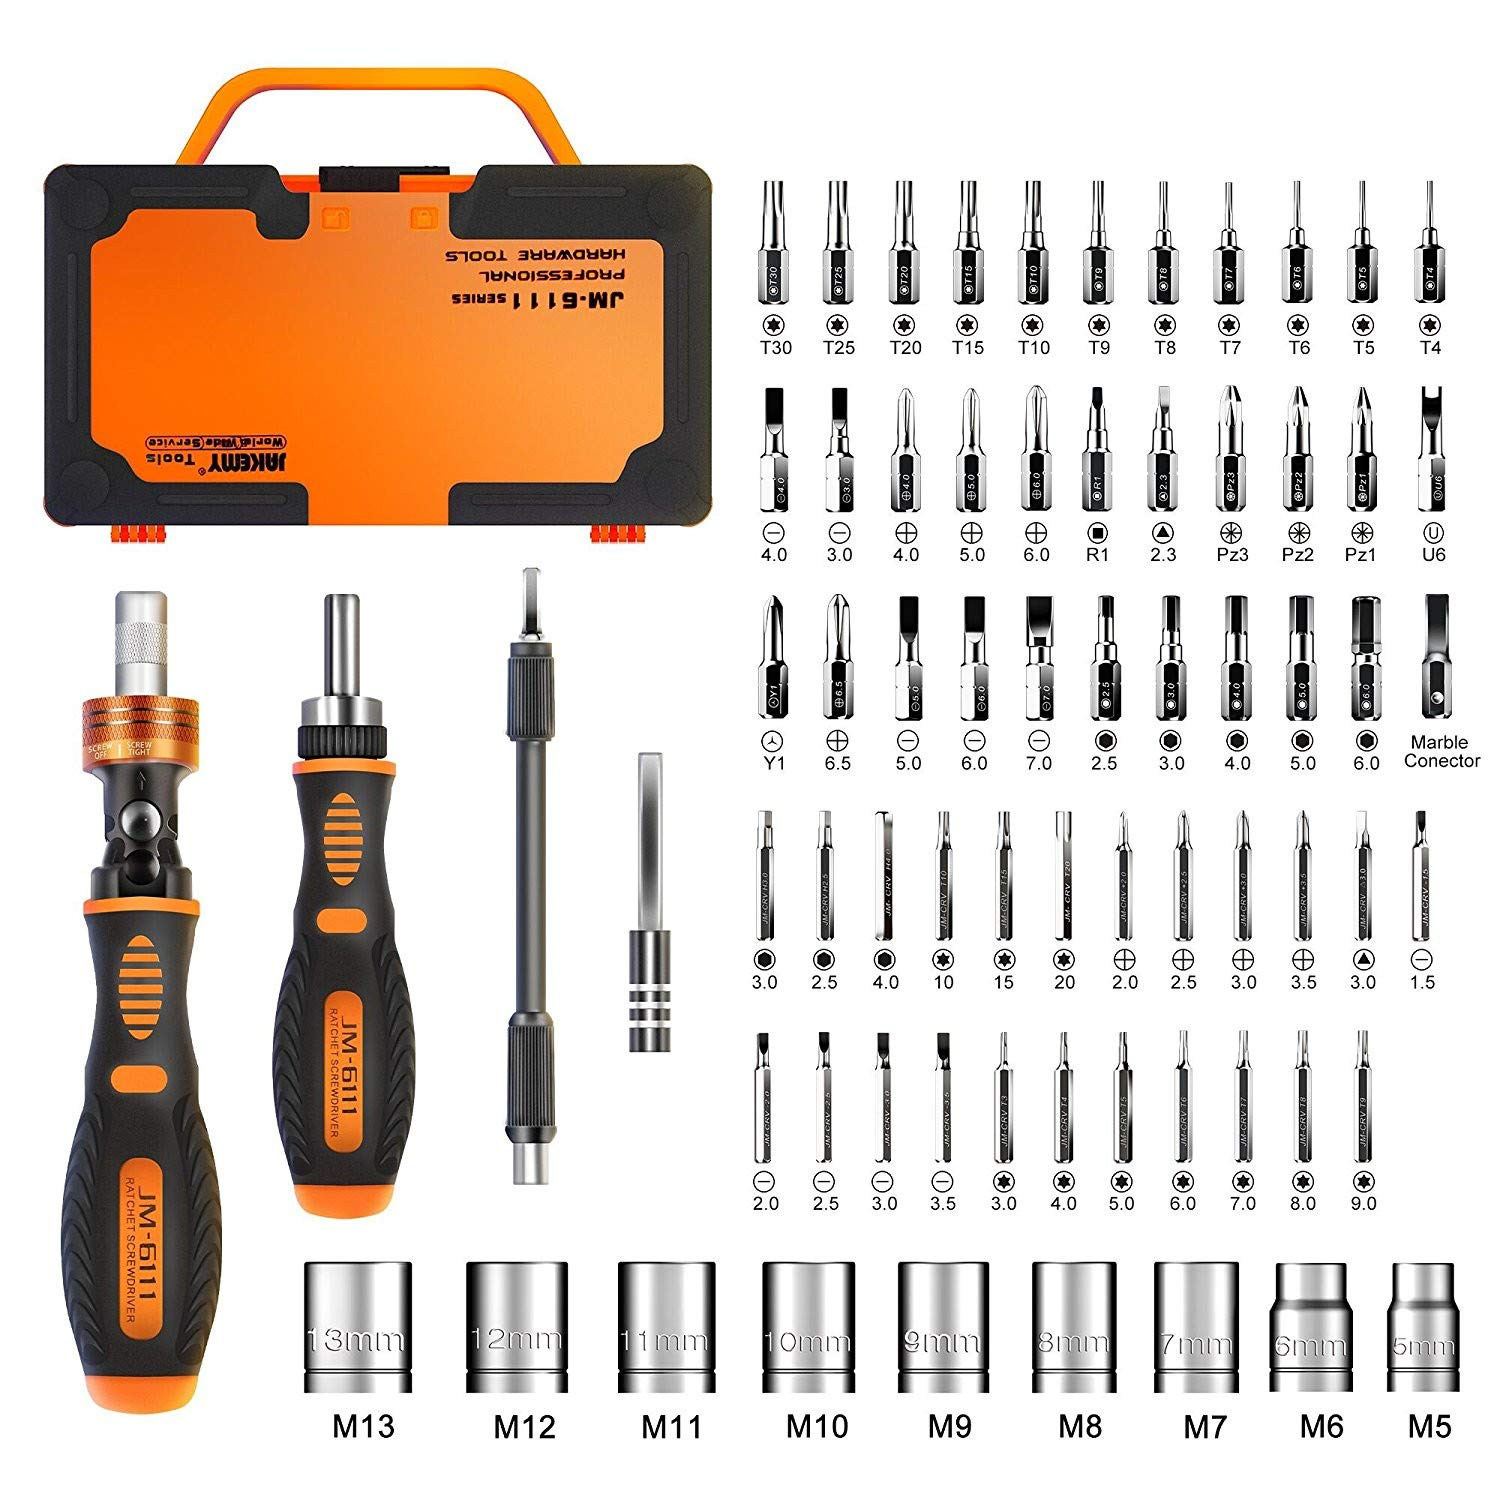 Jakemy Home Rotatable Ratchet Screwdriver Set, 69 in 1 Household Repair Toolkit, Disassemble Magnetic Kit for Furniture/Car/Computer/Electronics Maintenance by JAKEMY